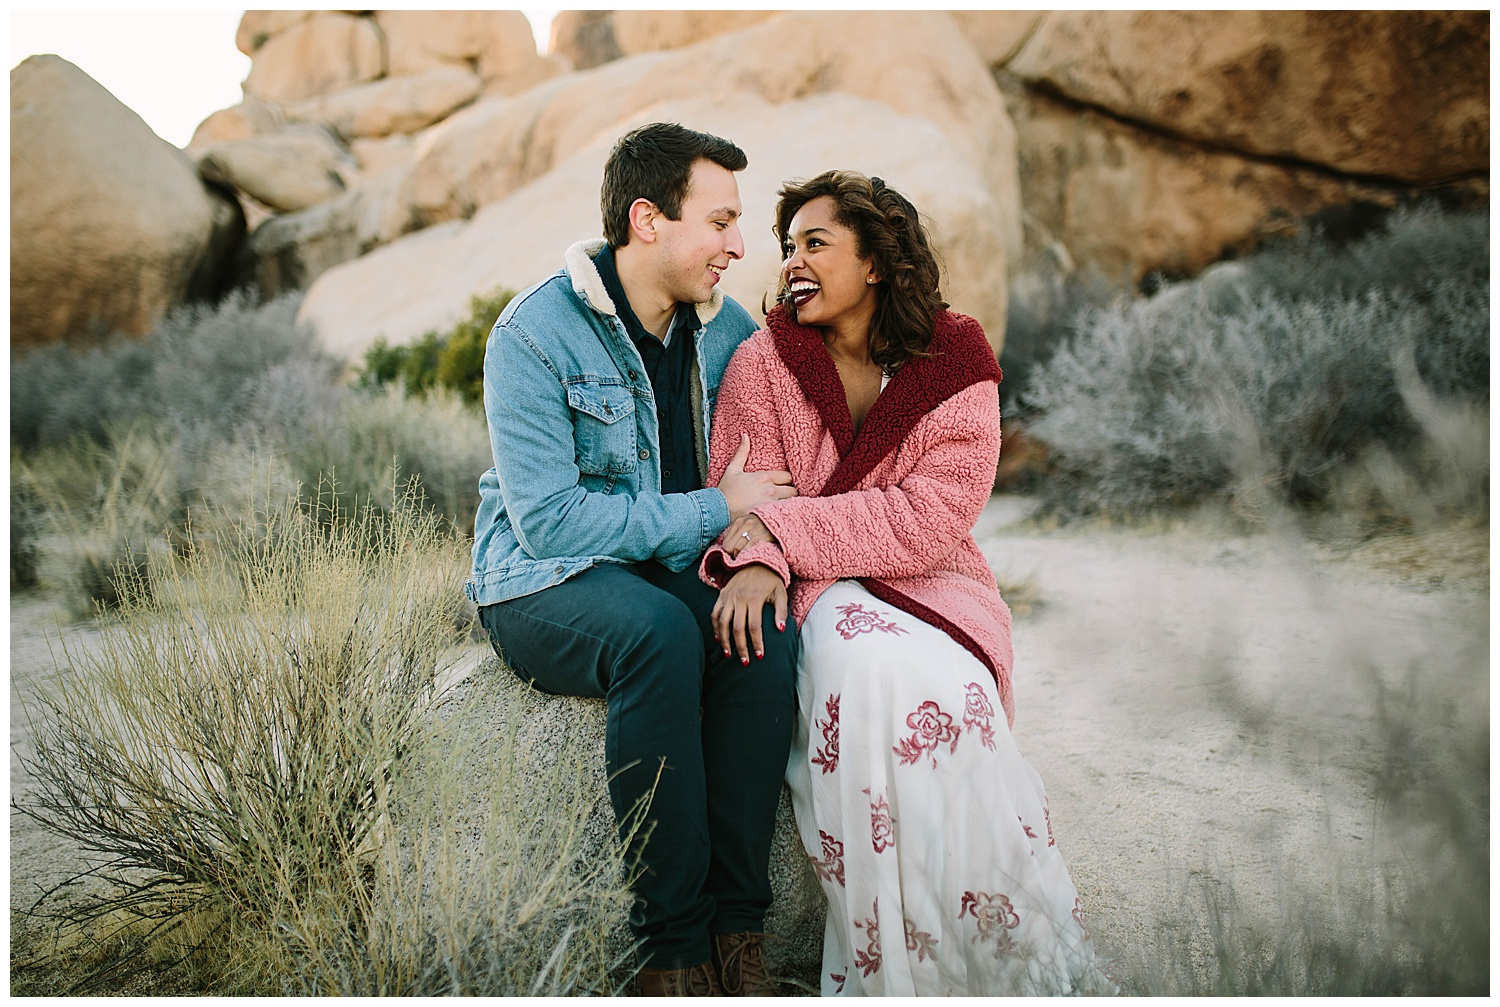 la.lifestyle.photography.session.engaged.malibu.joshuatree.kendralynnephotography-28.jpg